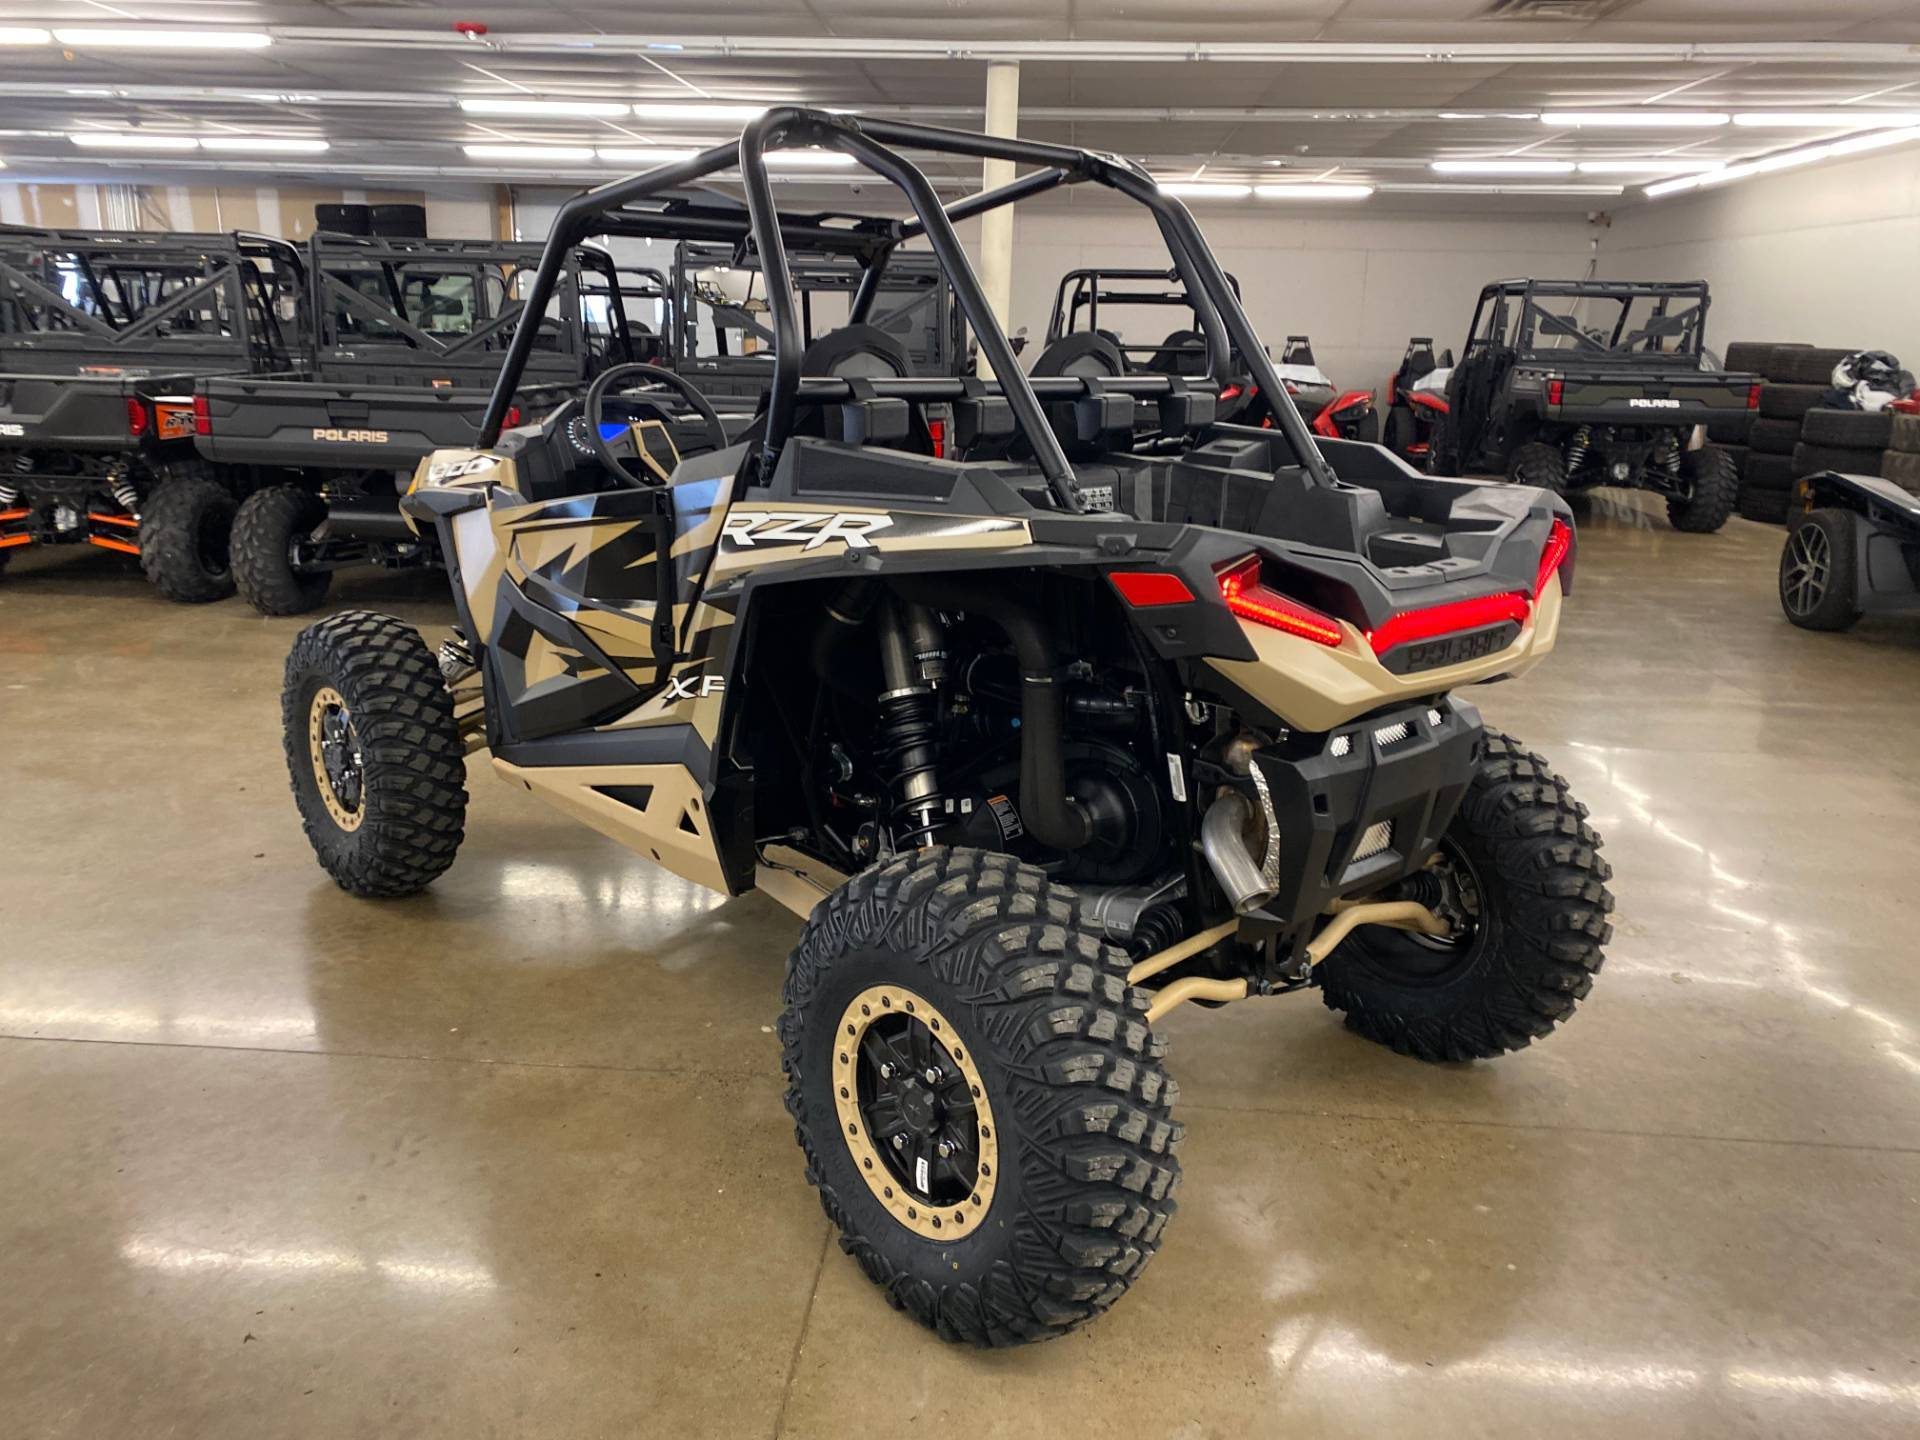 2020 Polaris RZR XP 1000 Trails & Rocks in Beaver Falls, Pennsylvania - Photo 6